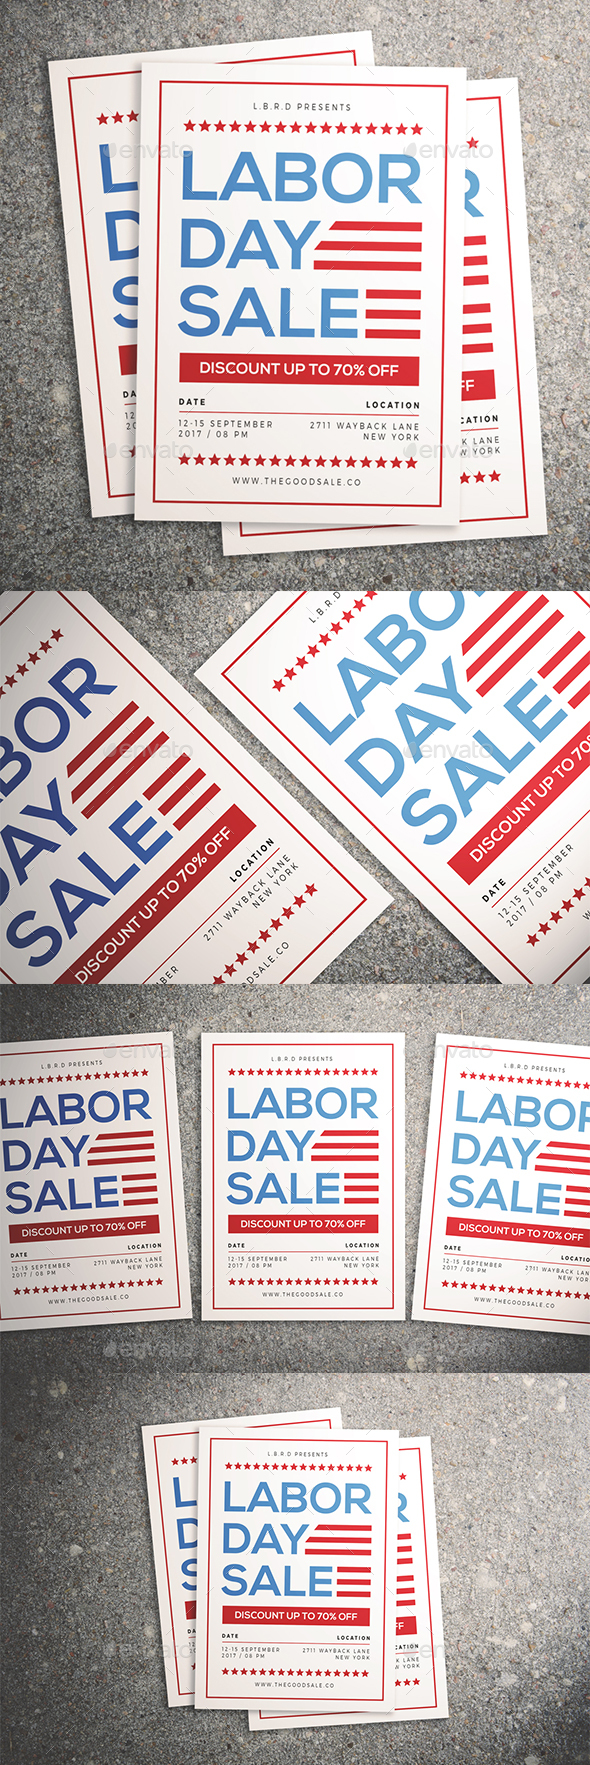 GraphicRiver Labor Day Sale Flyer 20554458